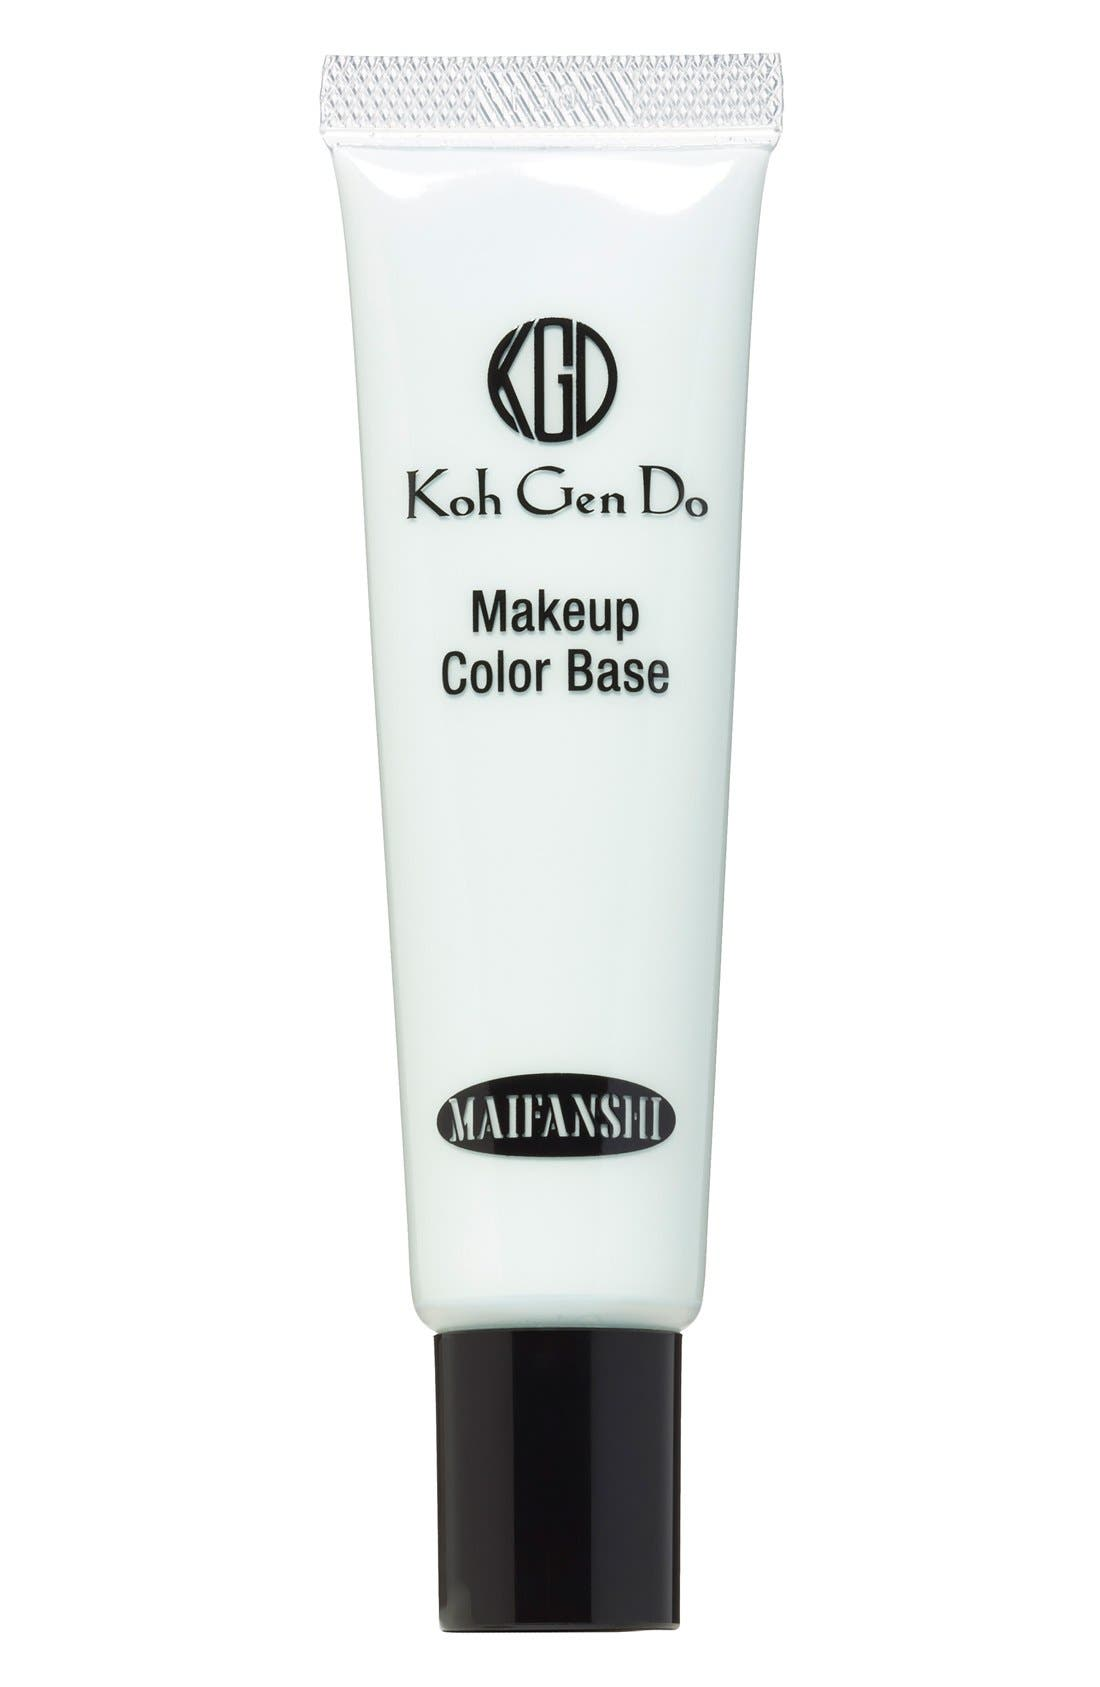 Koh Gen Do 'Maifanshi - Green' Makeup Color Base